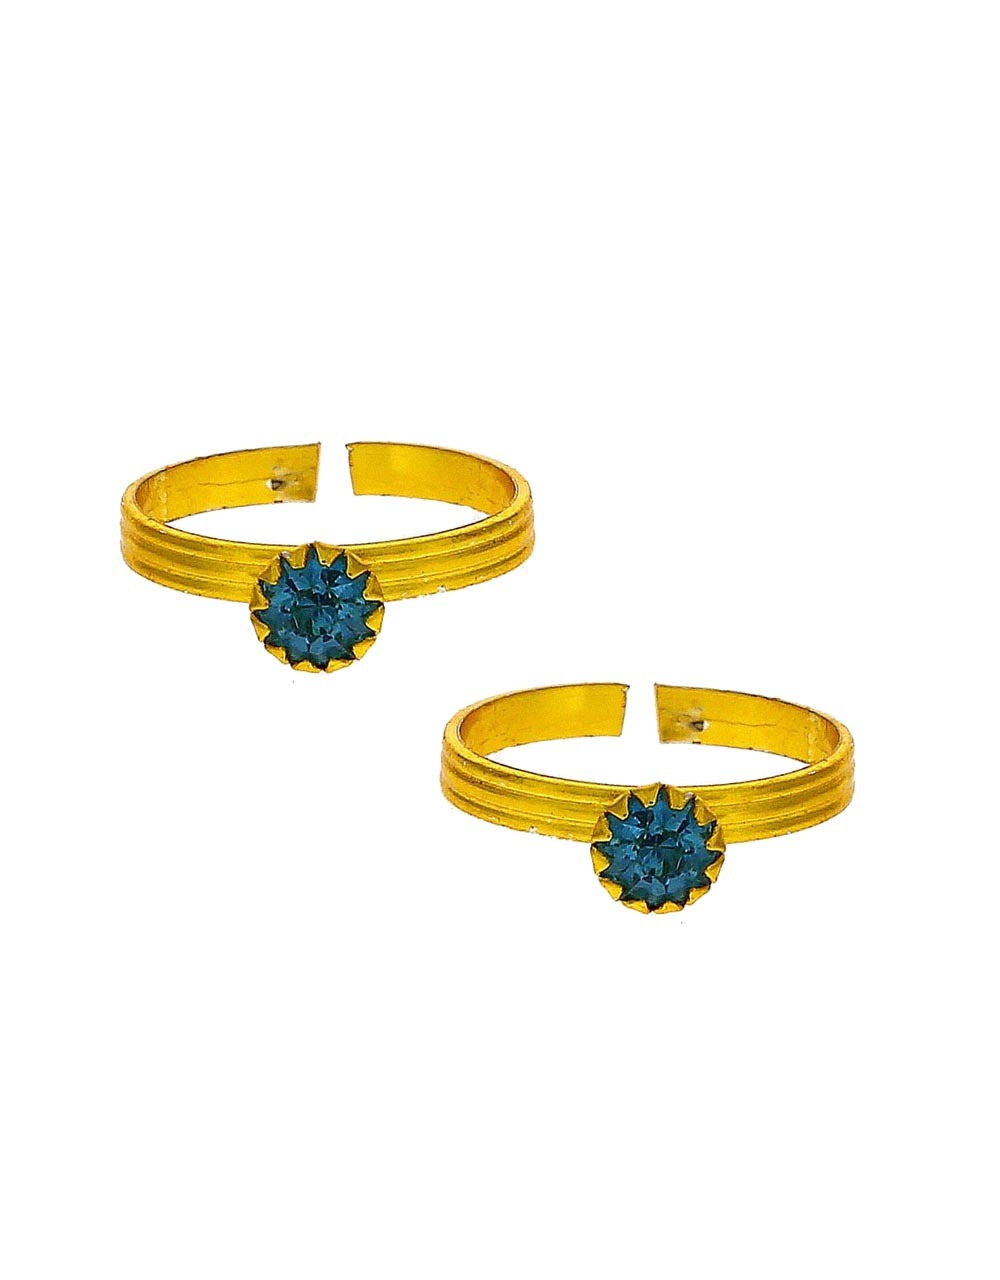 Attractive sky- blue stone golden finish bichhudi for woman